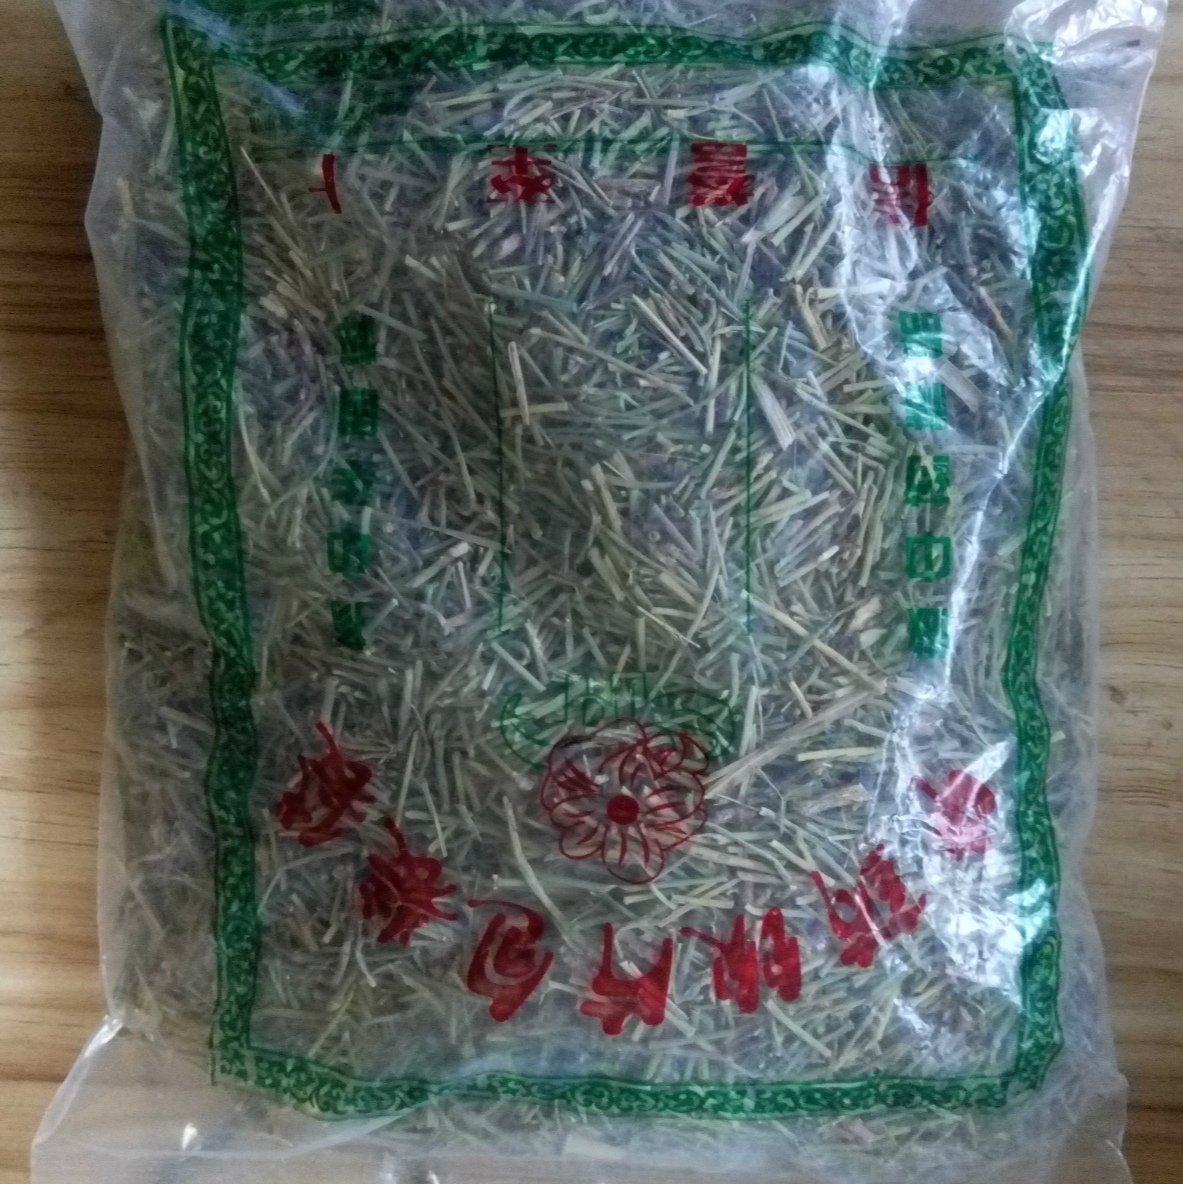 2kg Pure Natural Wild Ephedra Tea Herbal Tea Chinese ephedra Sinica tea/Ma-huang/ma huang, the treatment of bronchial asthma